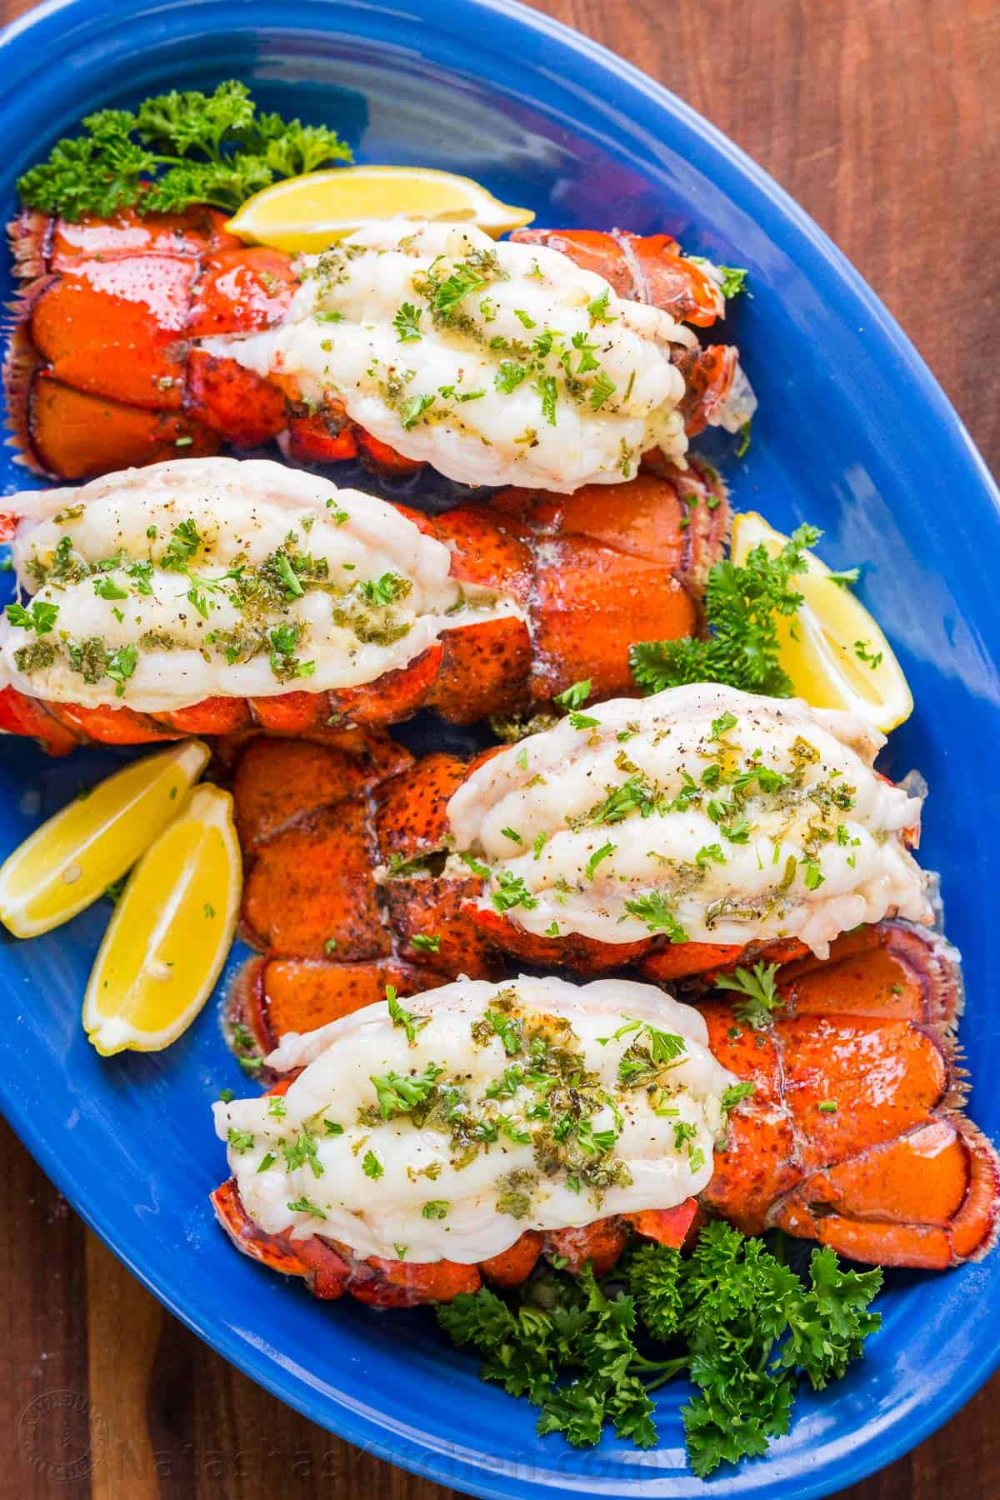 Broiled lobster tails are easier to make than you think - only 10 min in the oven! Video tutorial on how to butterfly lobster tails. Prepare your own restaurant quality, seriously delicious lobster tails. Broiled lobster meat is crazy tender, juicy and every bite is bursting with fresh lemon butter flavor. #lobstertail Broiled lobster tails are easier to make than you think - only 10 min in the oven! Video tutorial on how to butterfly lobster tails. Prepare your own restaurant quality, seriously #lobstertail